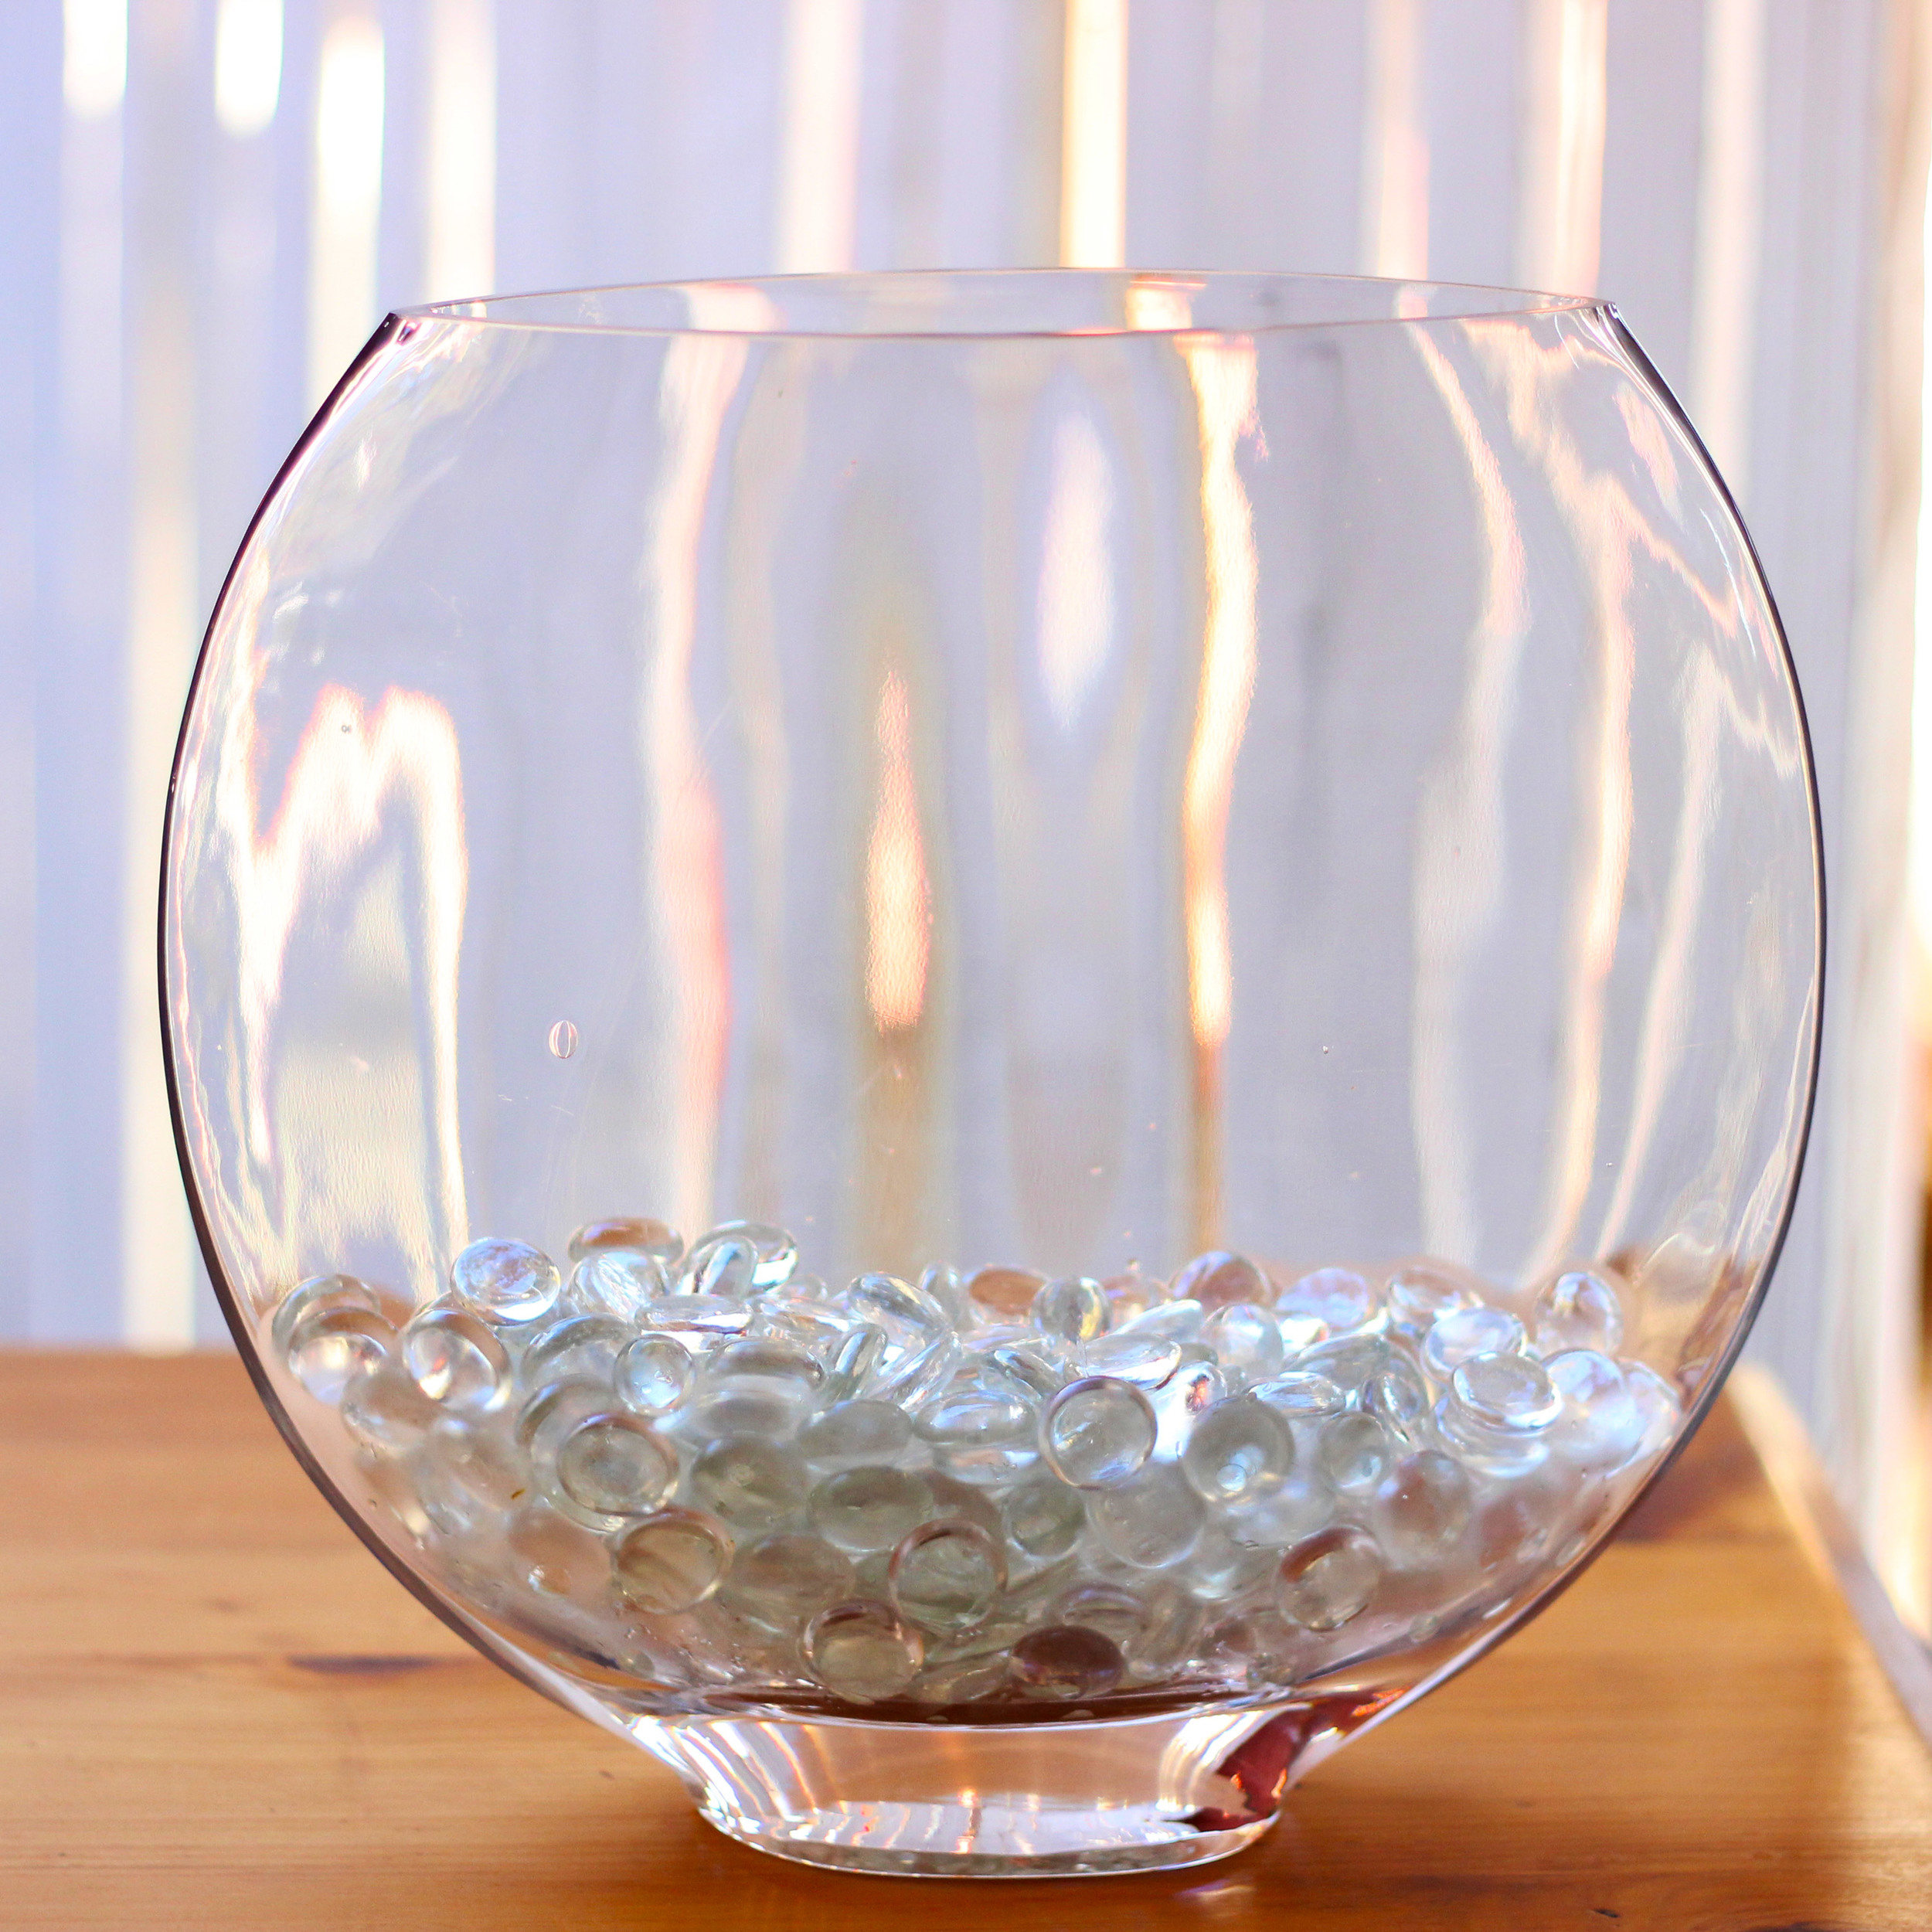 Carefully slide marbles into the bottom of the vase.